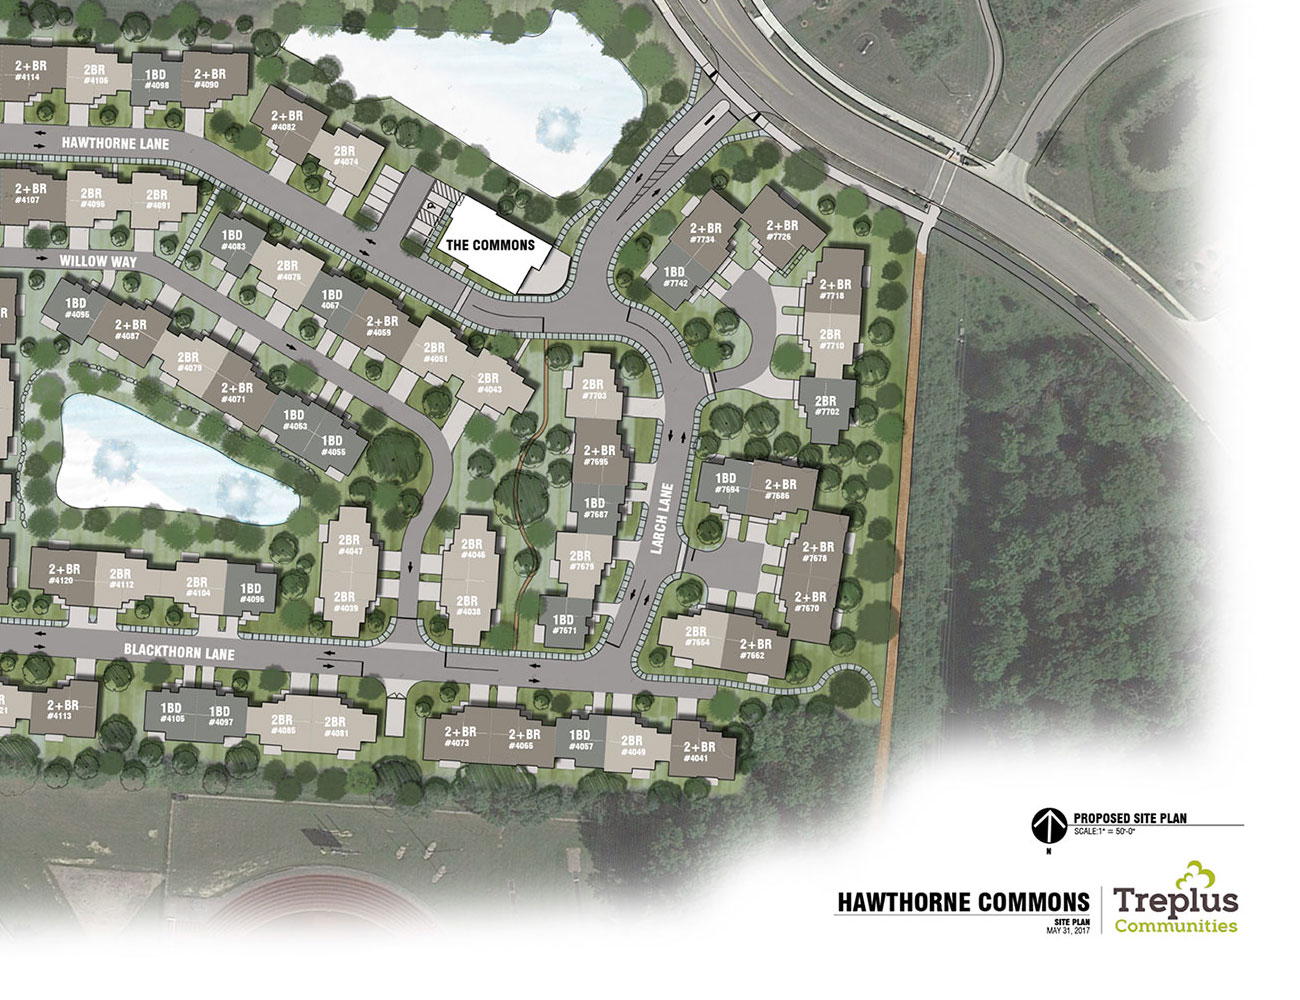 Featured Hawthorne Commons Site Plan